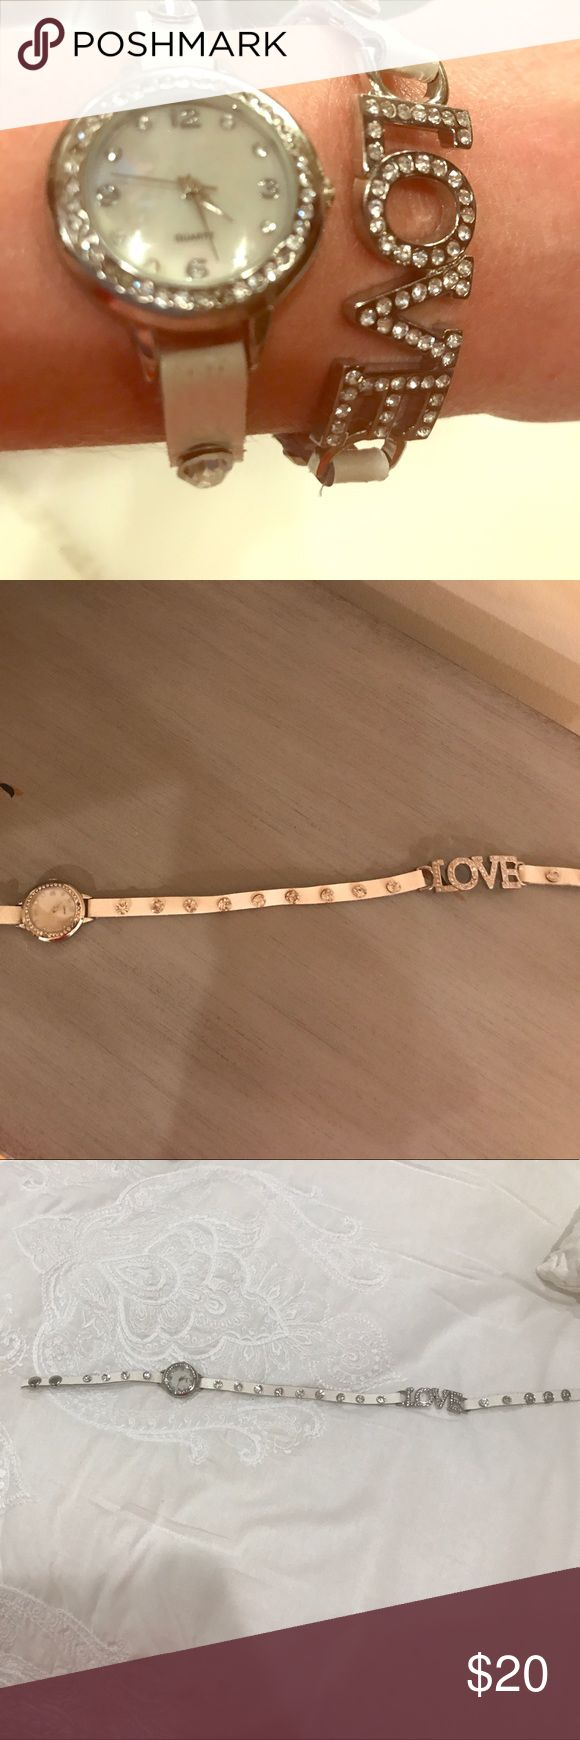 """Wrap-Around Watch A cute watch that fits multiple wrist sizes. It wraps around wrists twice and is very comfortable. Worn once. A great present for a friend or yourself! Has jewels on the rim of the clock and on the """"love"""". I hope you love this watch! Claire's Accessories Watches"""